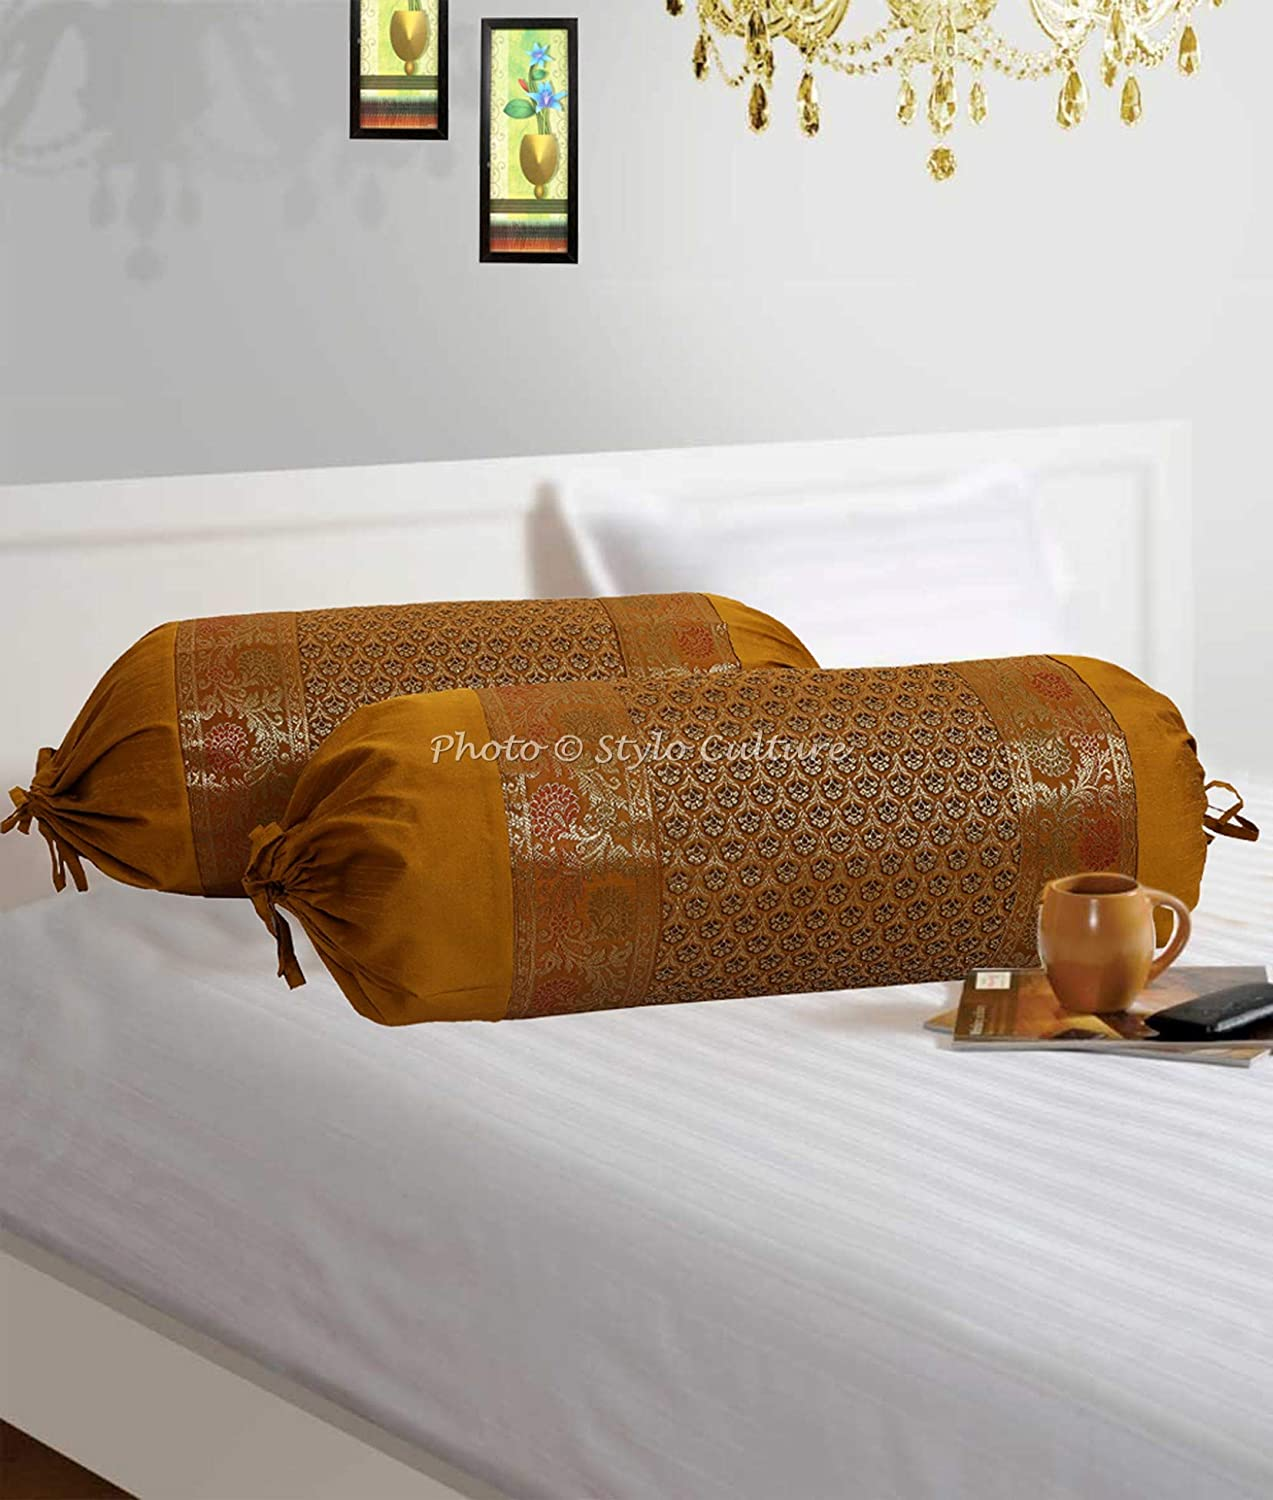 76x38 cm Set of 2 | 30x15 Inches Stylo Culture Indian Polydupion Cylindrical Hotdog Pillow Bolster Pillow Covers Gold Jacquard Brocade Border Floral Large Settee Cylinder Cushion Covers